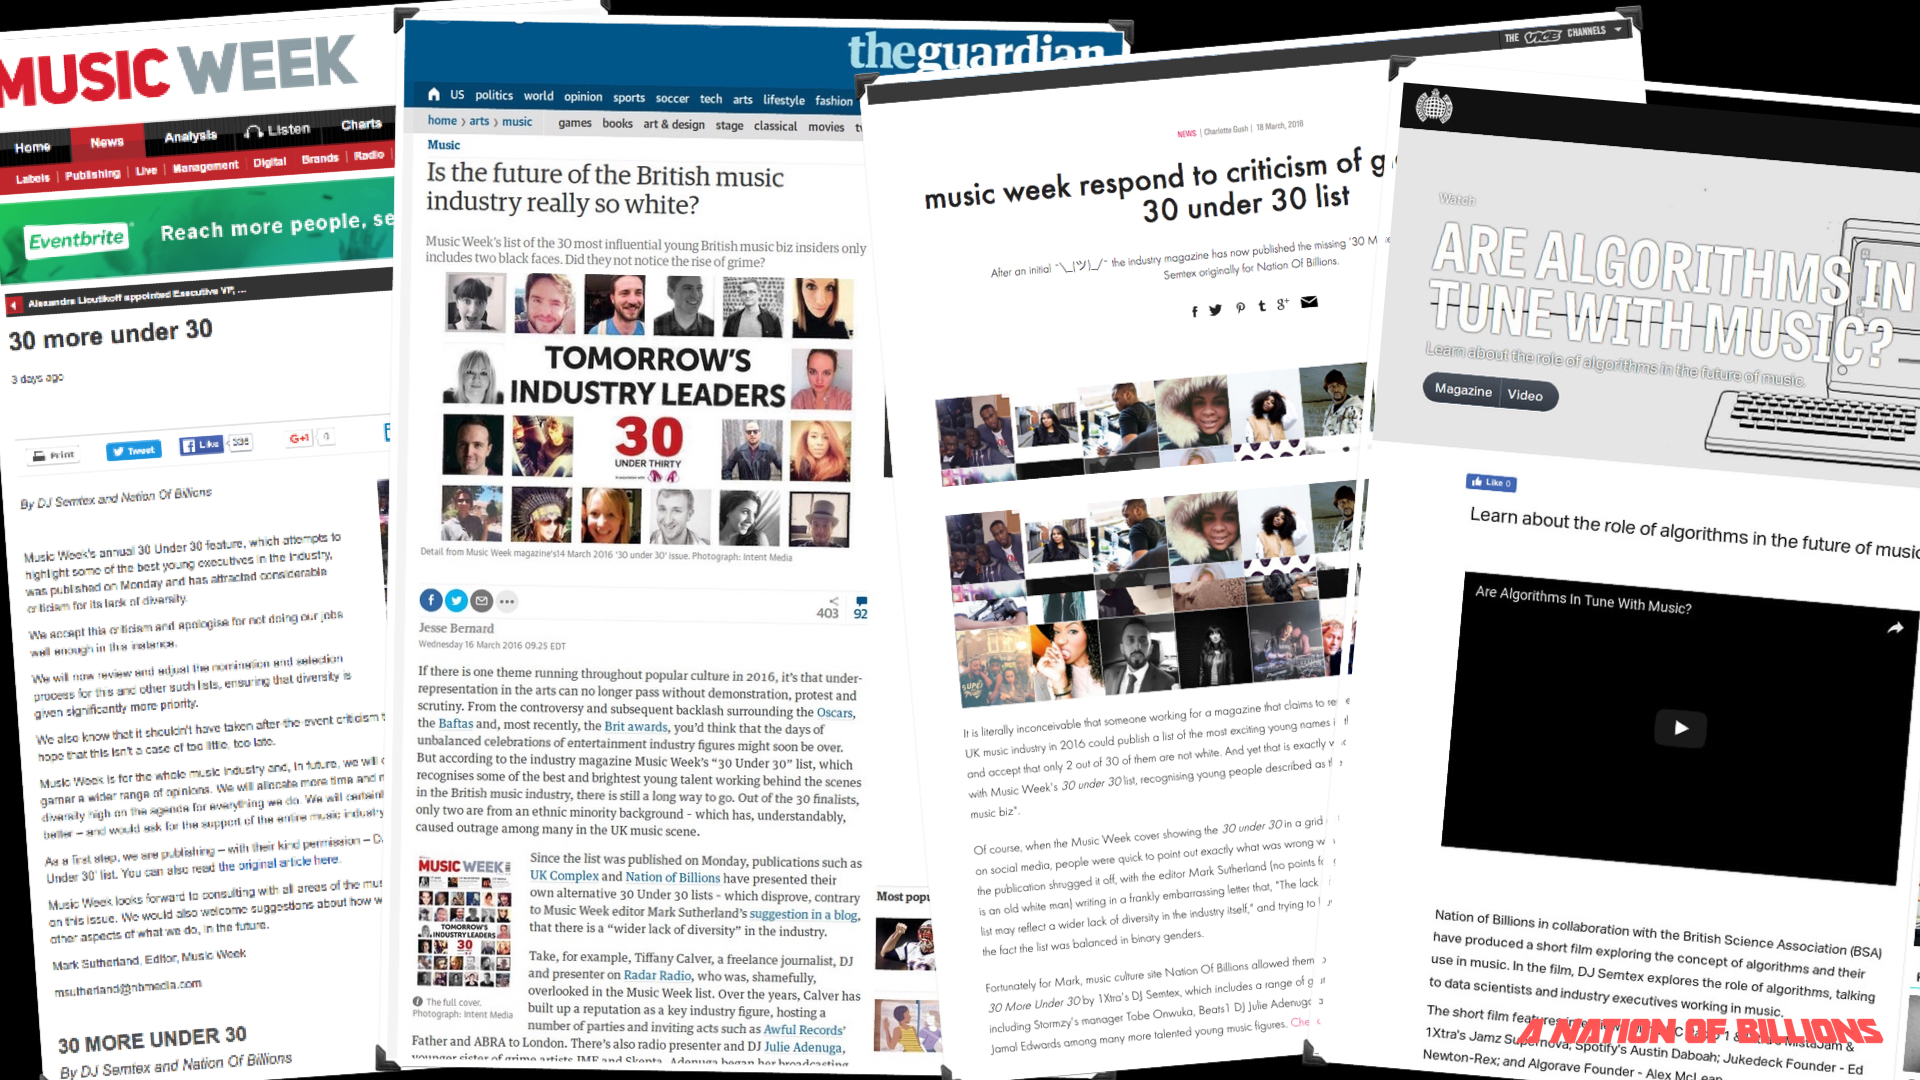 PRESS COVERAGE IN RESPONSE TO THE '30 MORE UNDER 30' ARTICLE